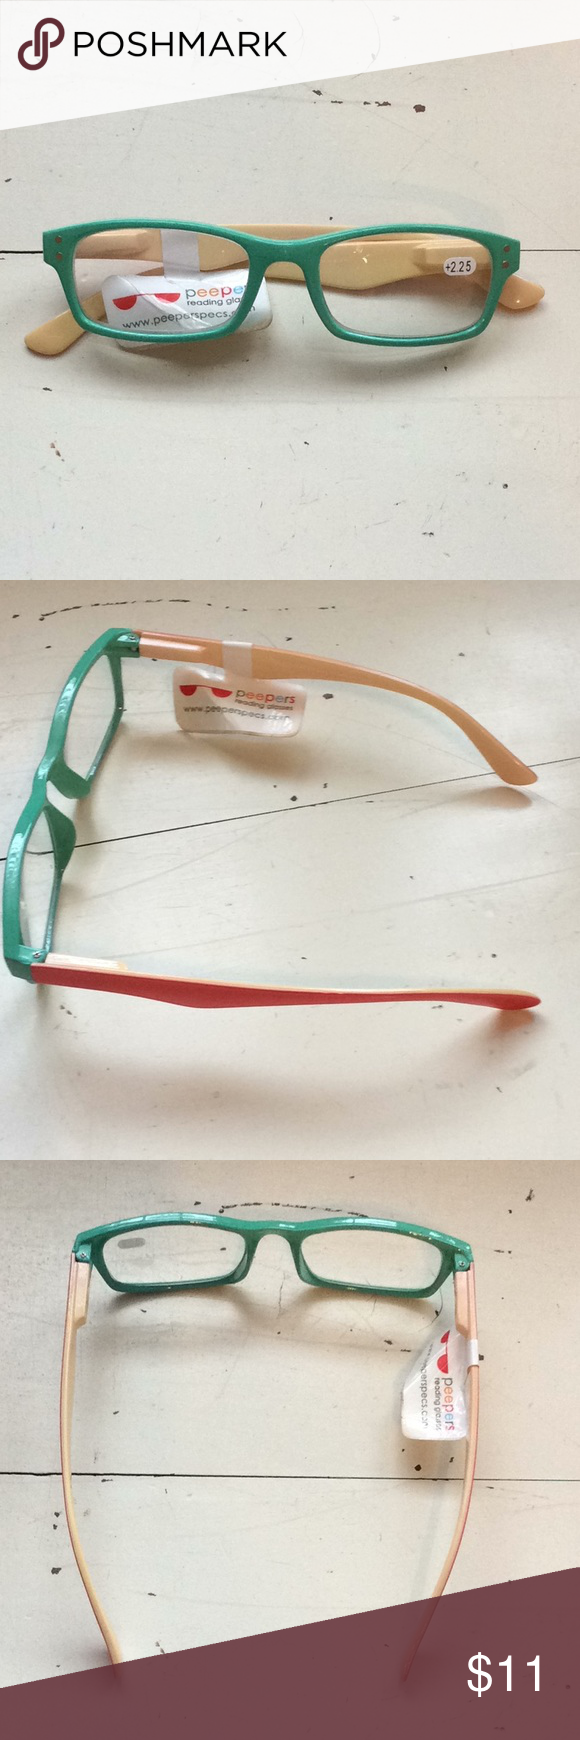 8166e0b7091b Peeper Reading Glasses +2.25 NWT Peepers Reading Glasses Mint Green